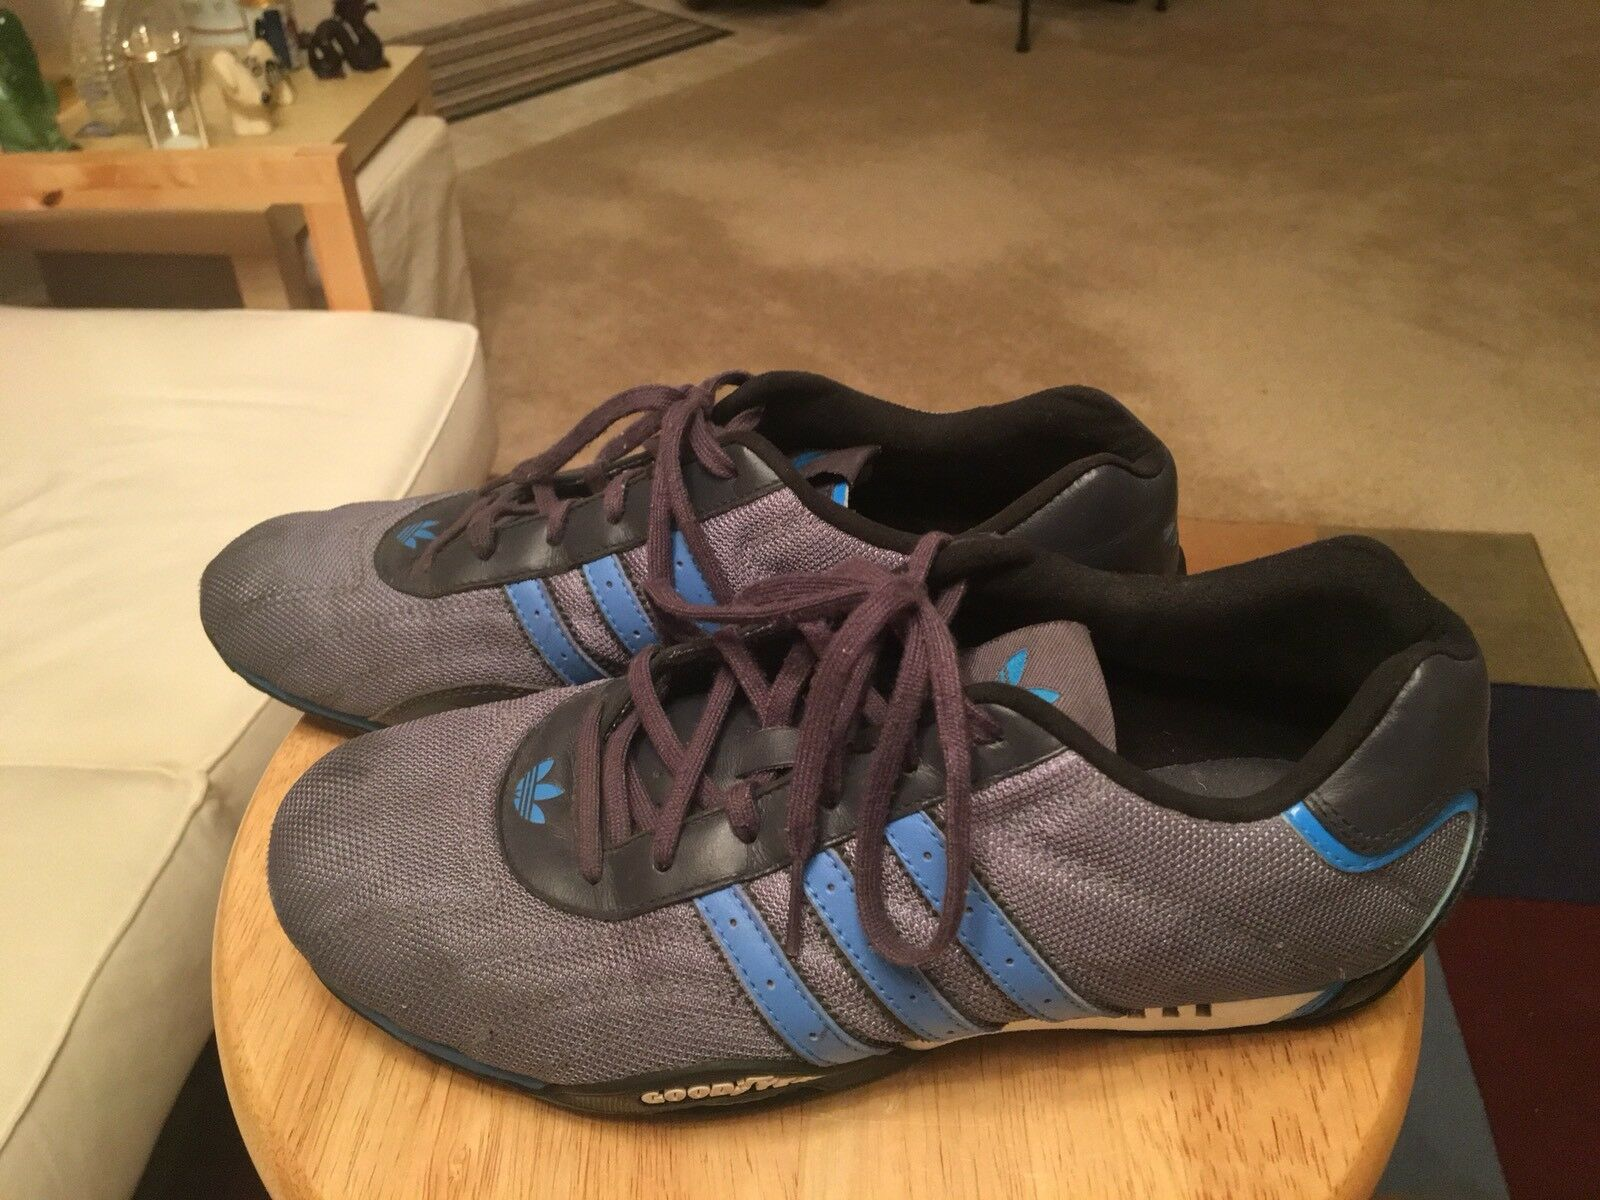 Vintage Team Adidas Goodyear Gray/Blue & White Trim Men's US8.5 Driving Shoes